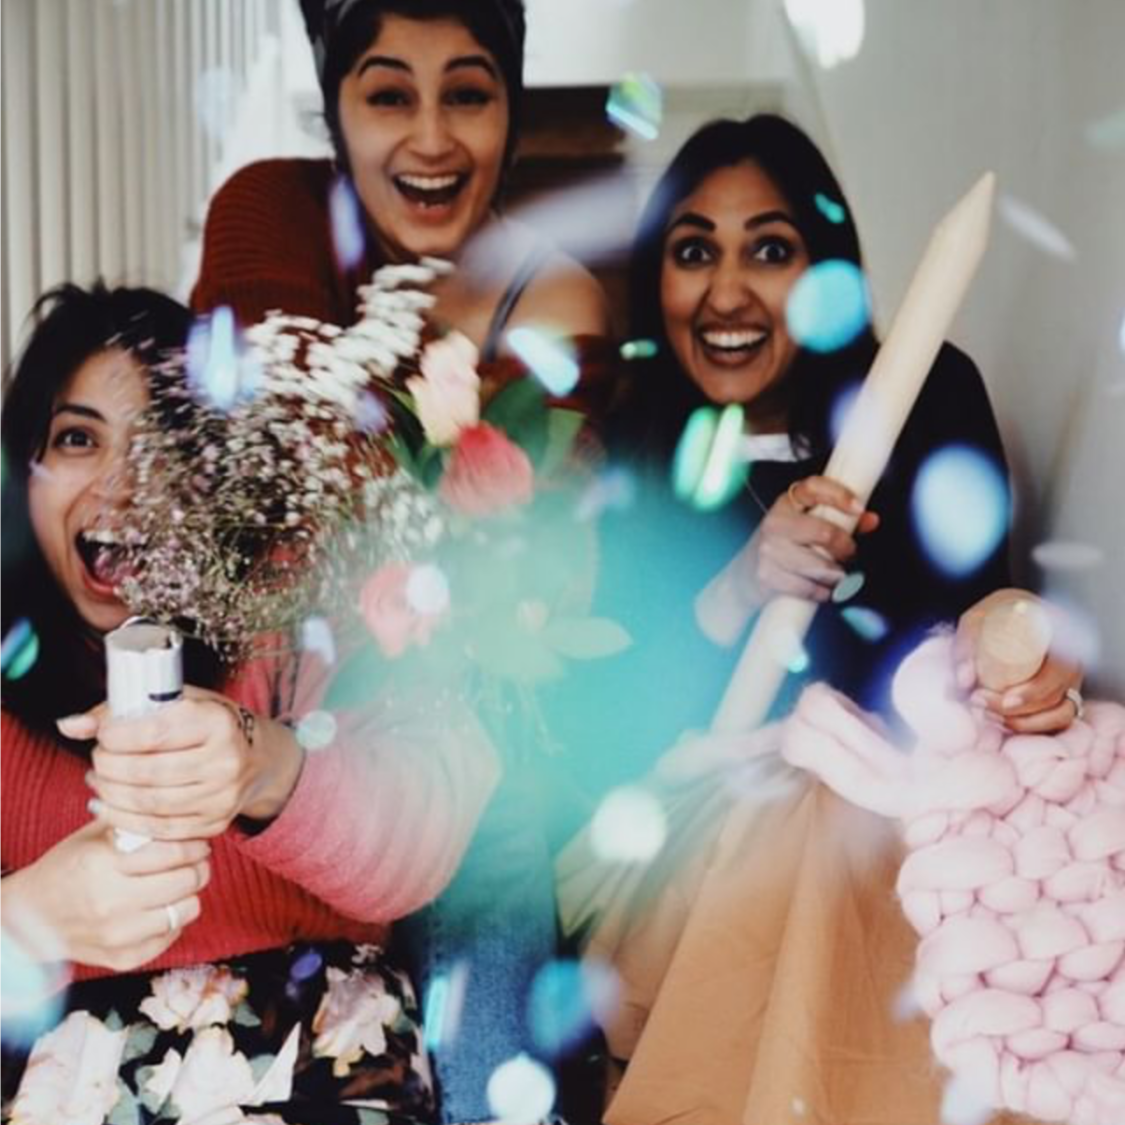 - Insta queens Rida and Rabya set up Gxlentines as a place for women, non-binary and gender fluid Instagrammers to meet up IRL. Theireventon Saturdaypromises to be full of our favourite things;food, music, chats andpoetry. And even if you're not on the 'gram, you're still welcome. Winner!Tickets are £20 with some availability to pay less if you need to.